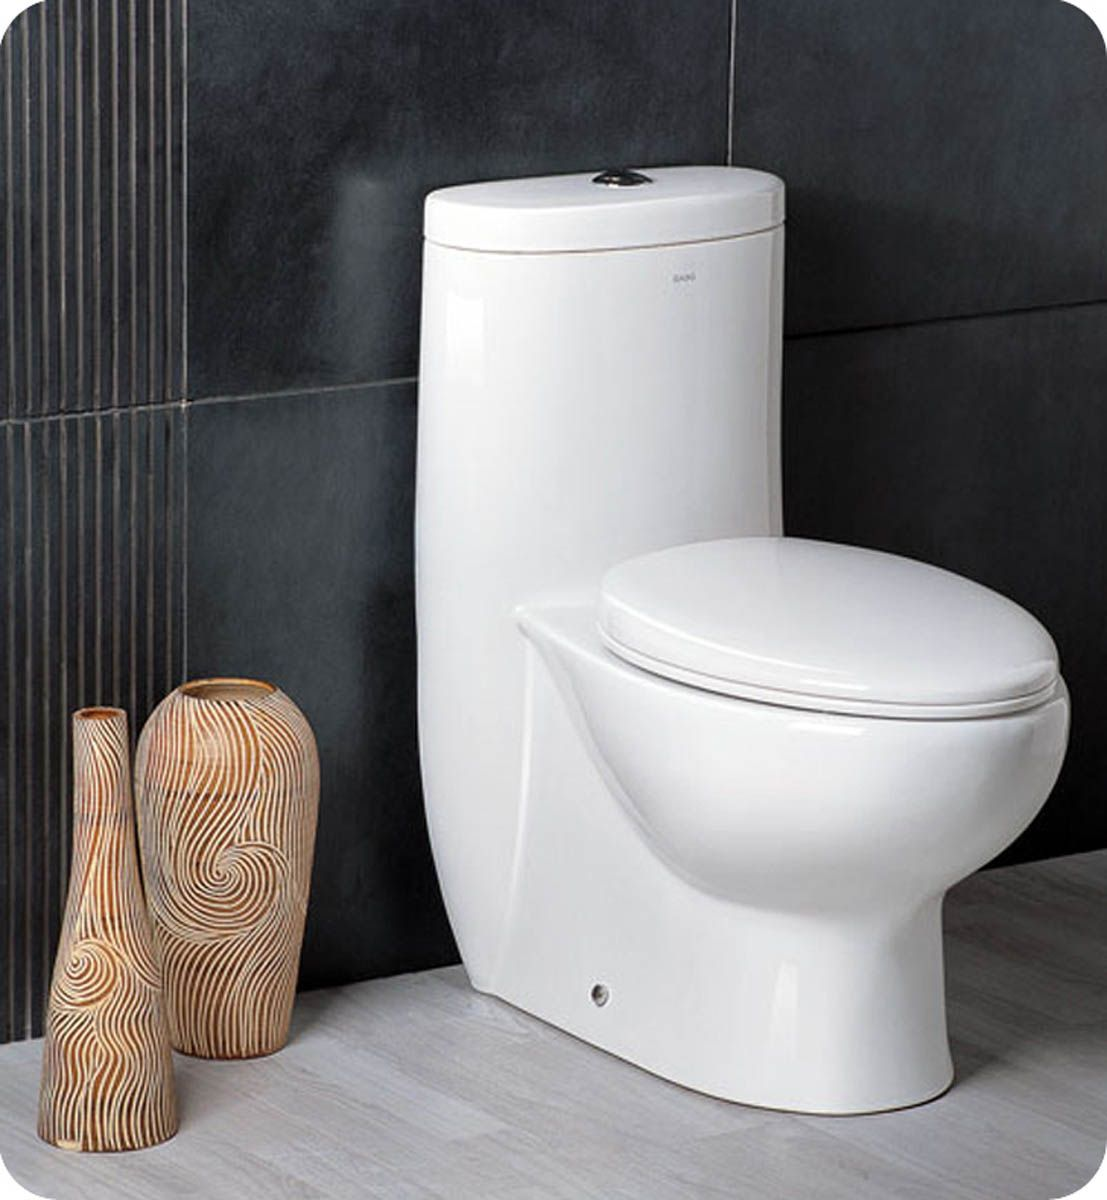 The Delphinus dual-flush toilet is an elegant and eco-friendly way to be more green in your bathroom